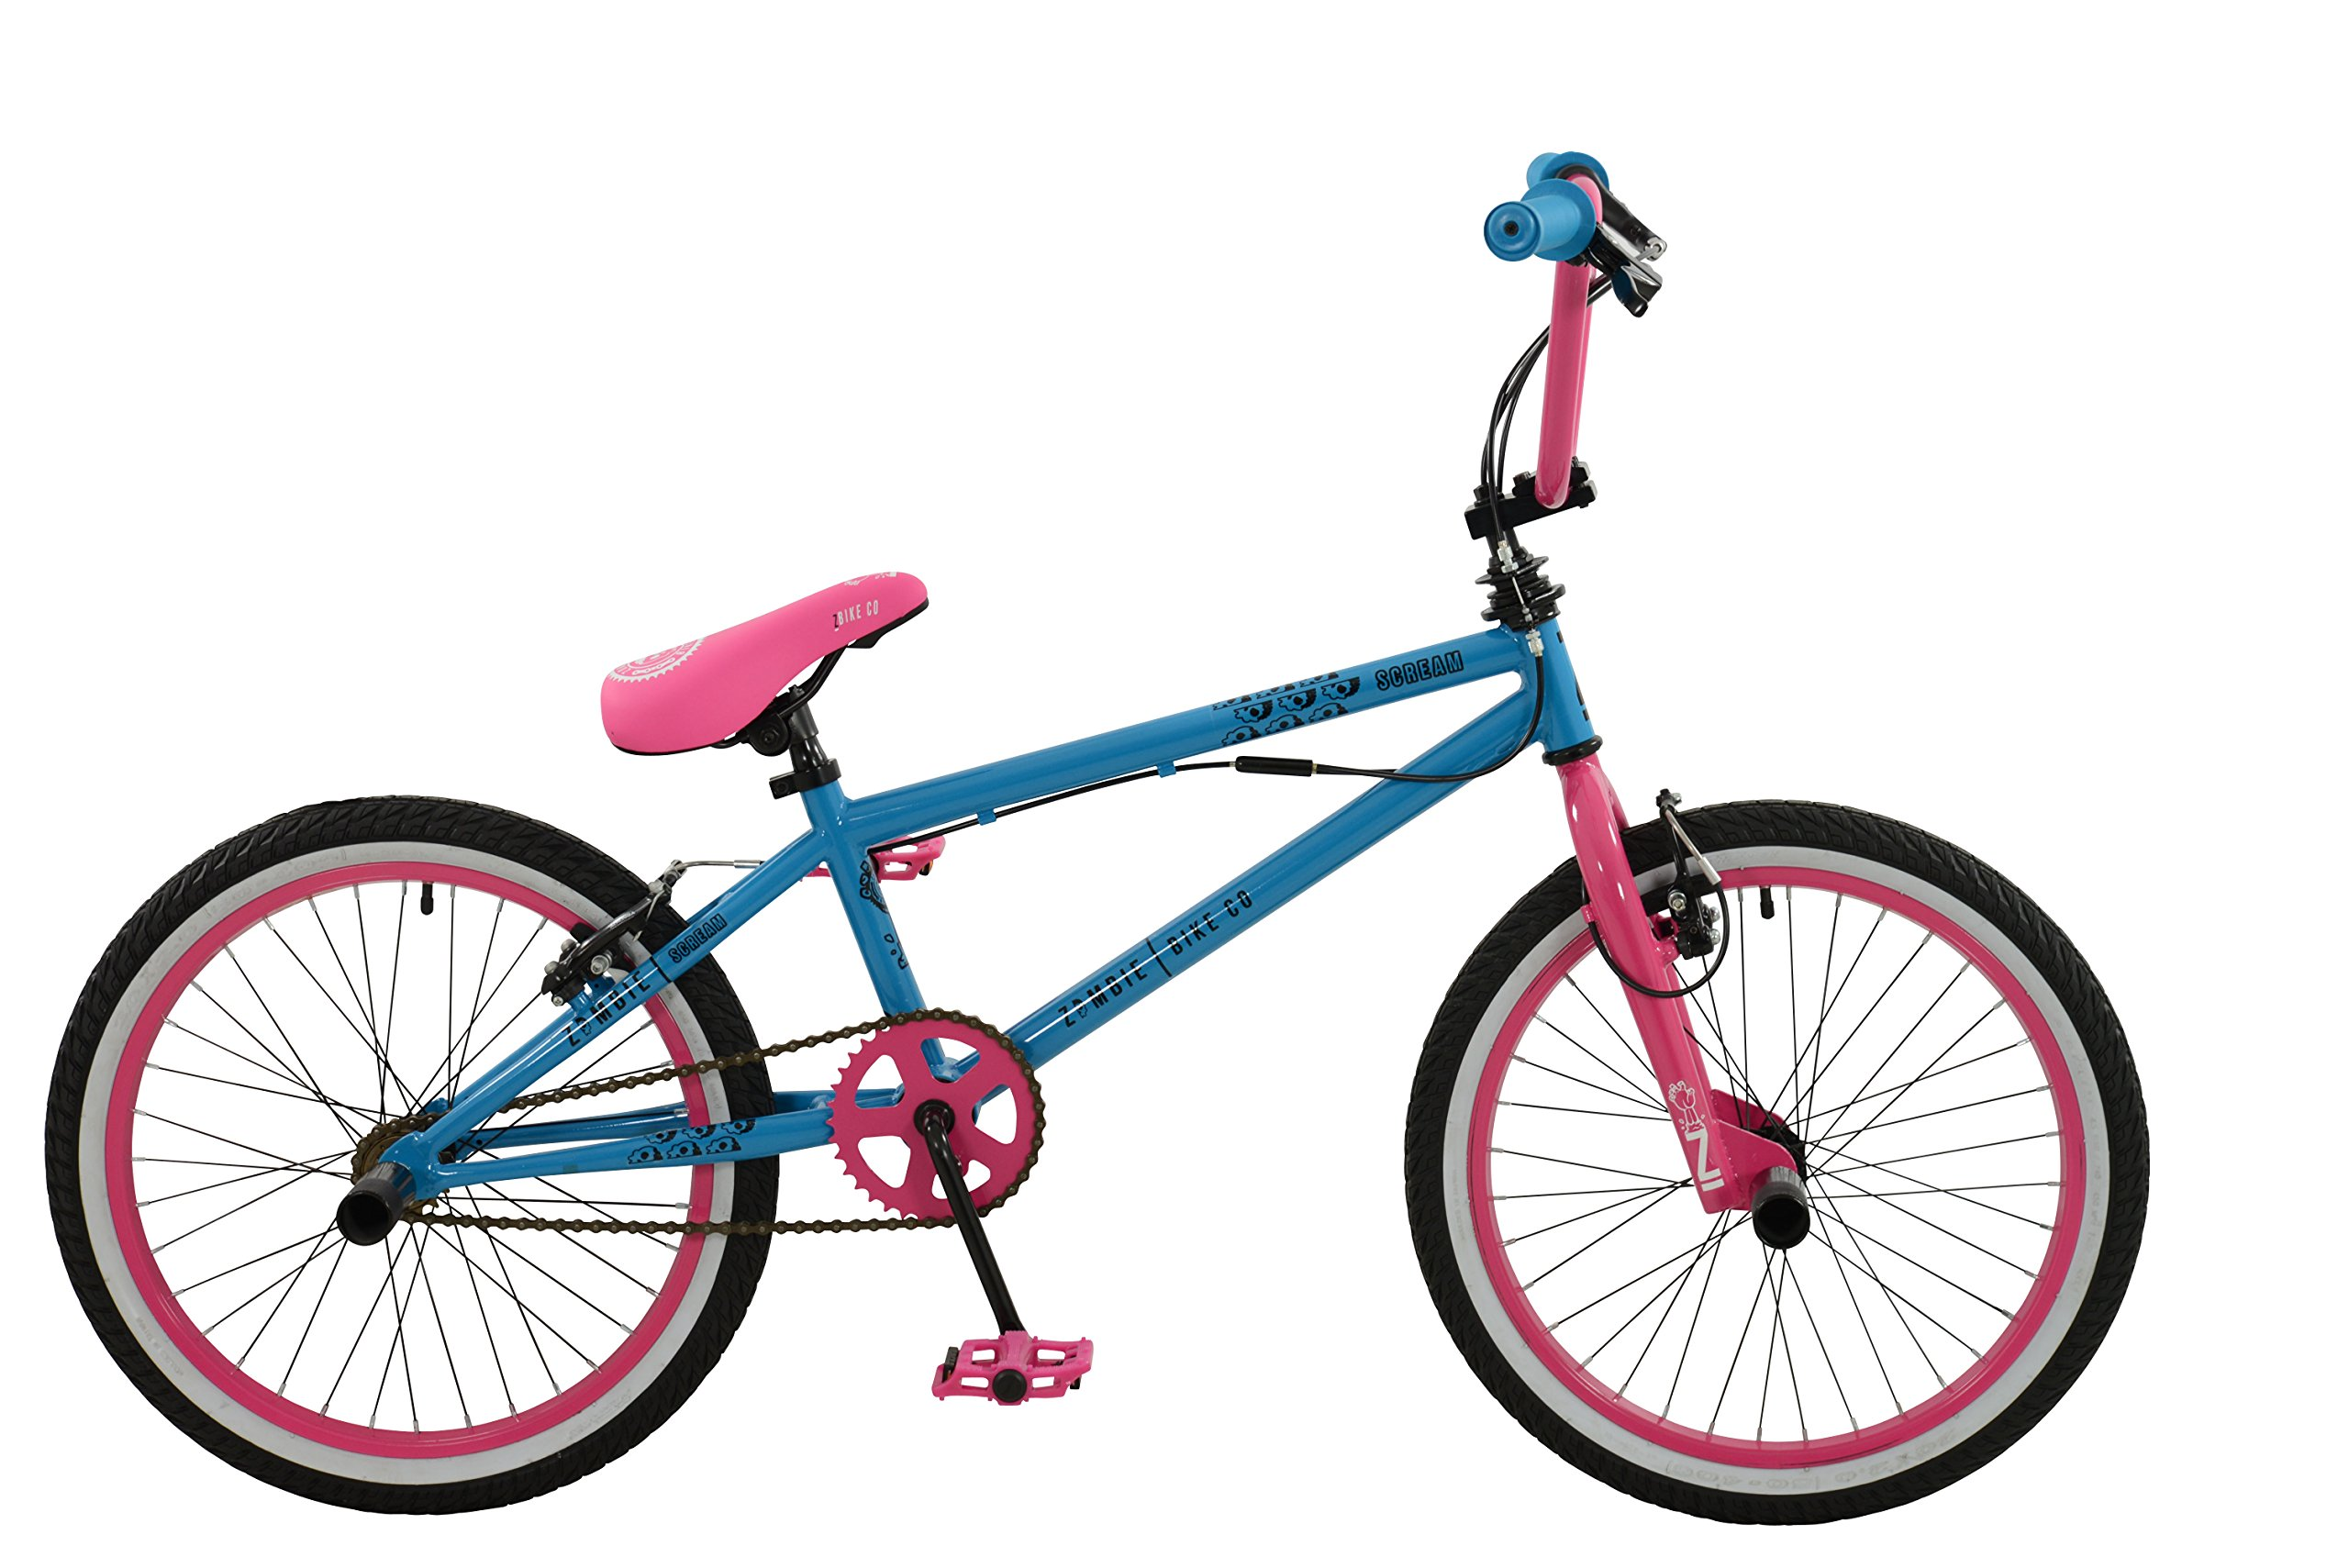 Zombie Girl Scream Bicicleta, Azul/Rosa, tamaño 20: Amazon.es ...